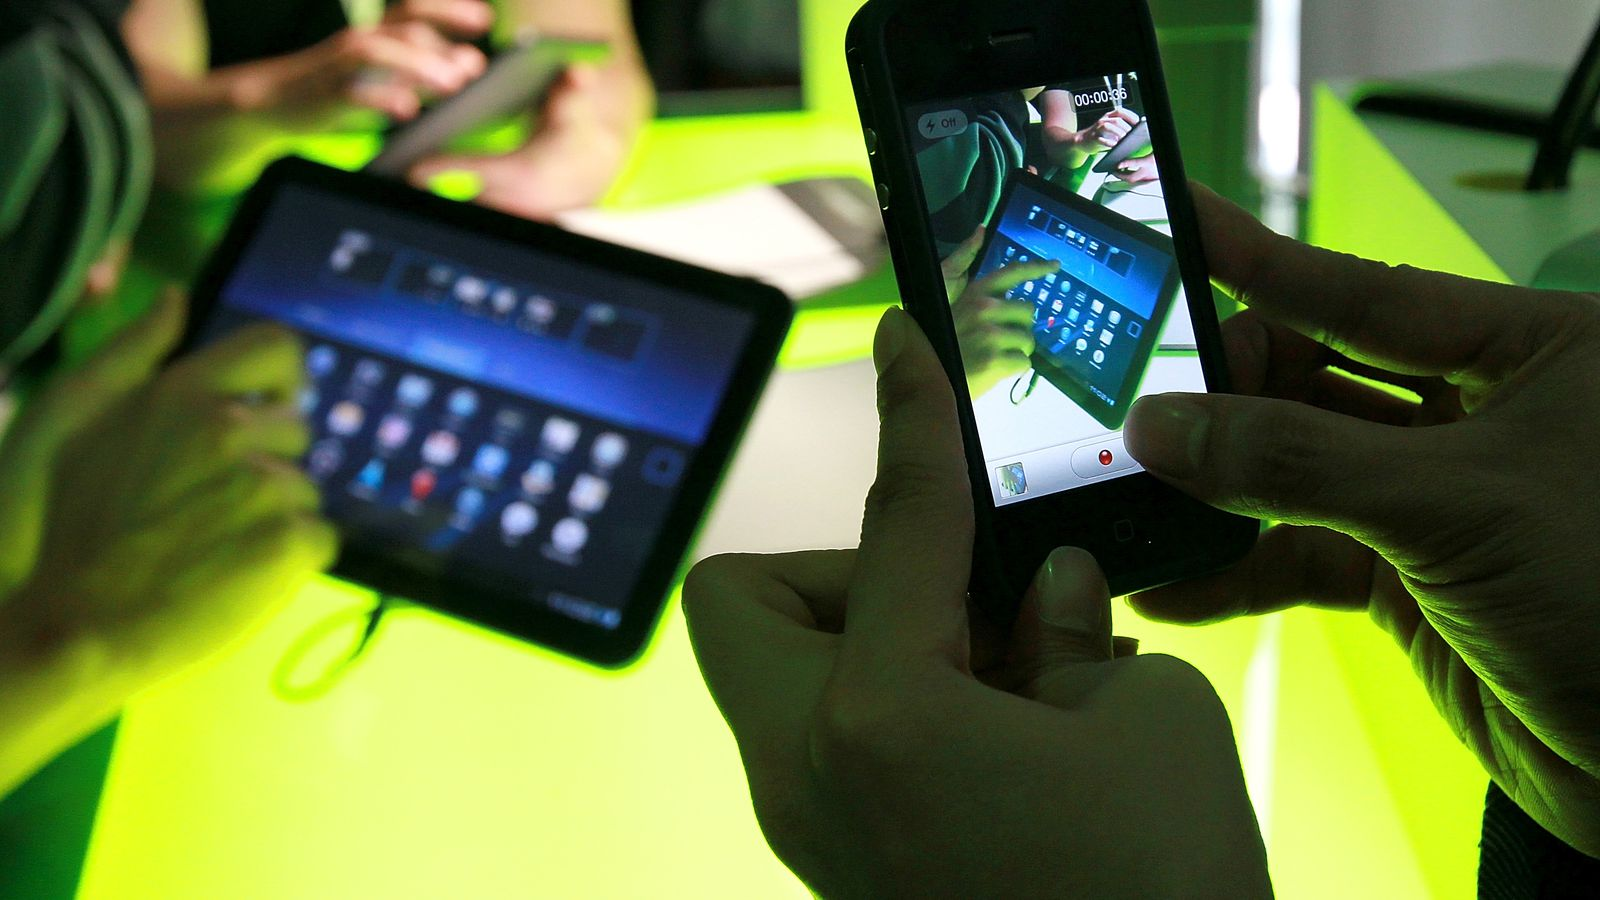 Google says the EU is wrong: Android is not anti-competitive - Recode